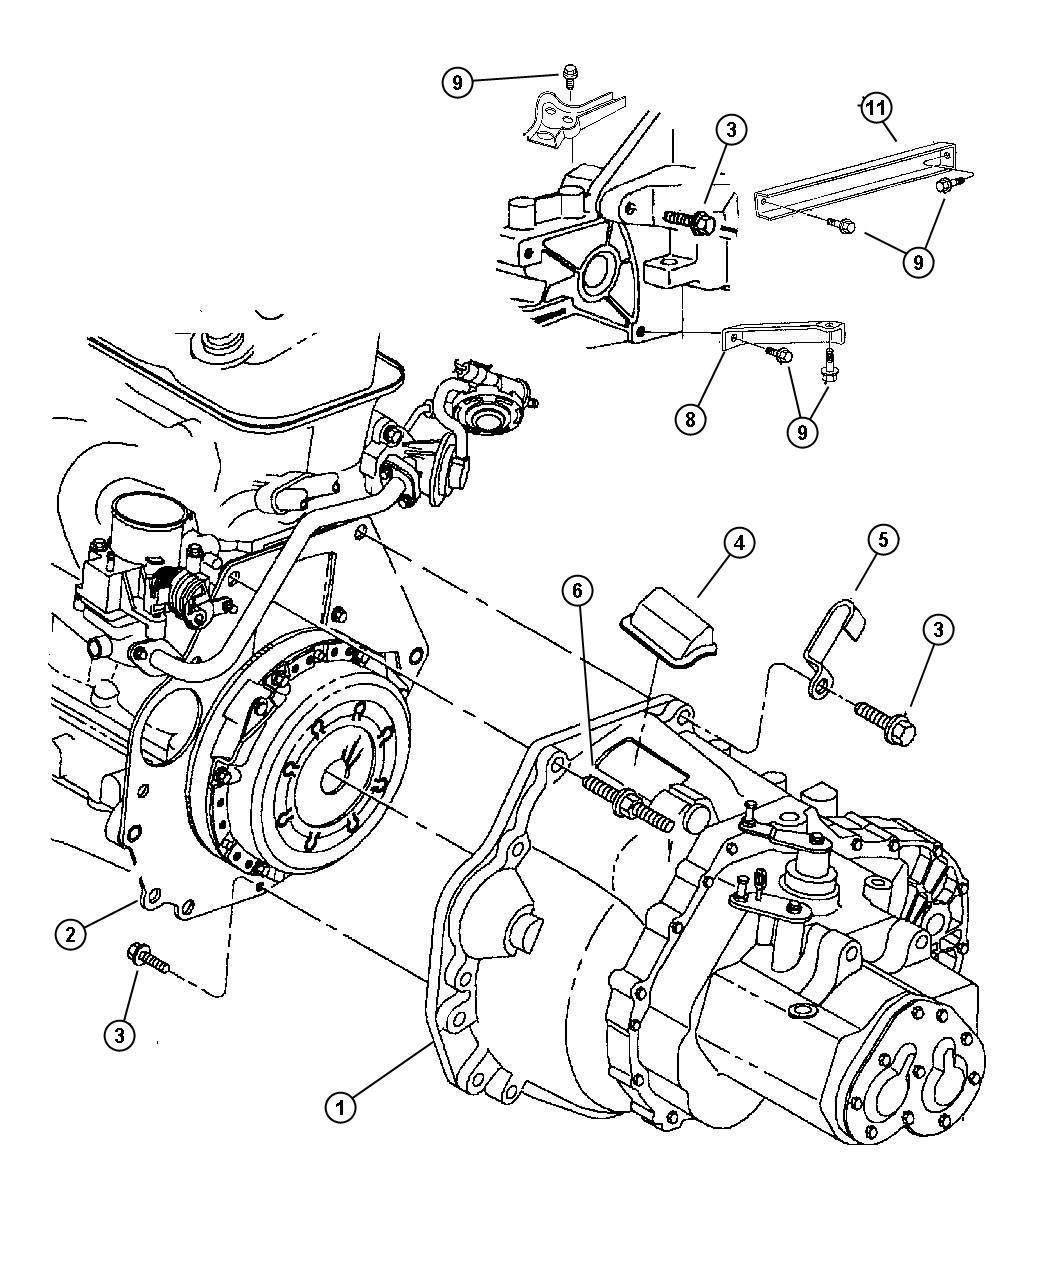 Excellent polaris rzr 800 wiring diagram contemporary electrical